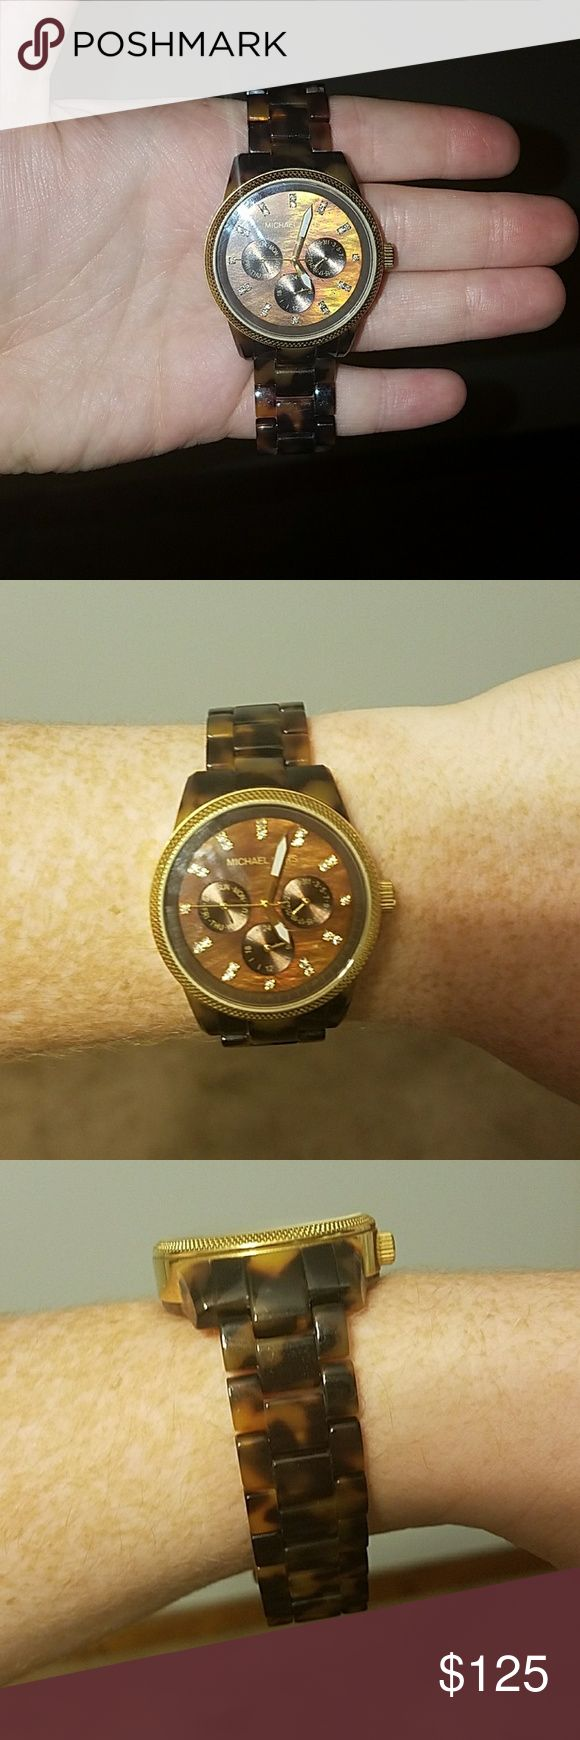 Michael Kors Tortoise Shell Watch Needs a new battery and has minimal scratch on face. Worn only a handful of times. I do not have original box. No links have been removed. Michael Kors Accessories Watches